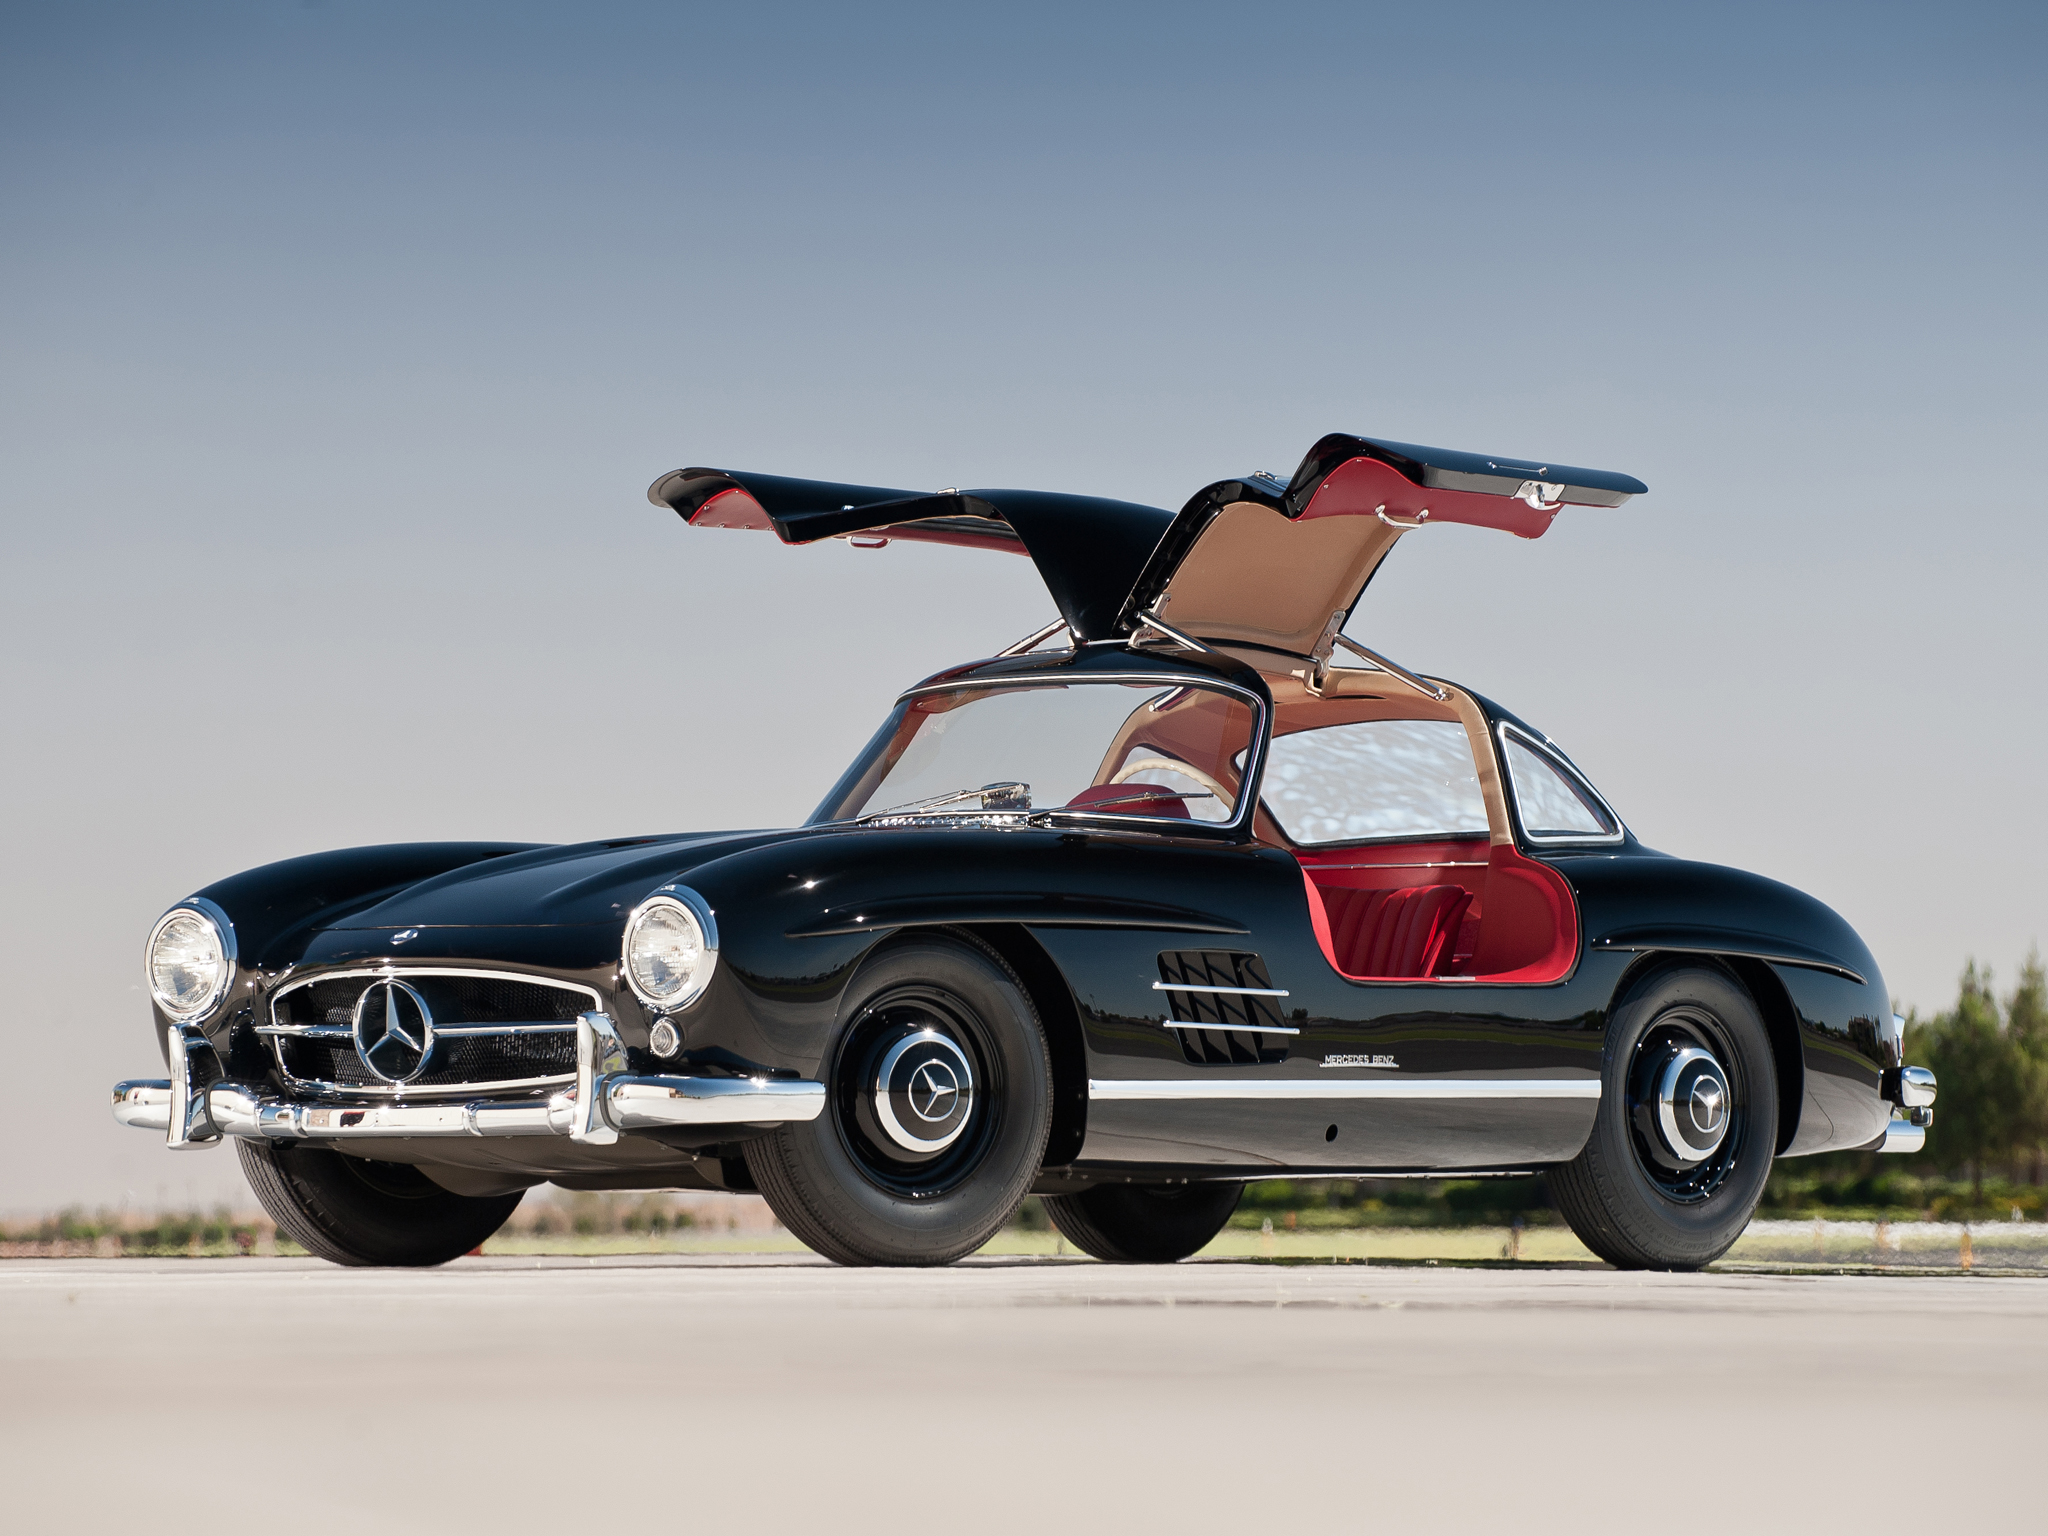 1954 mercedes benz 300 sl w198 300 tetro supercar supercars gullwing s wallpaper 2048x1536. Black Bedroom Furniture Sets. Home Design Ideas